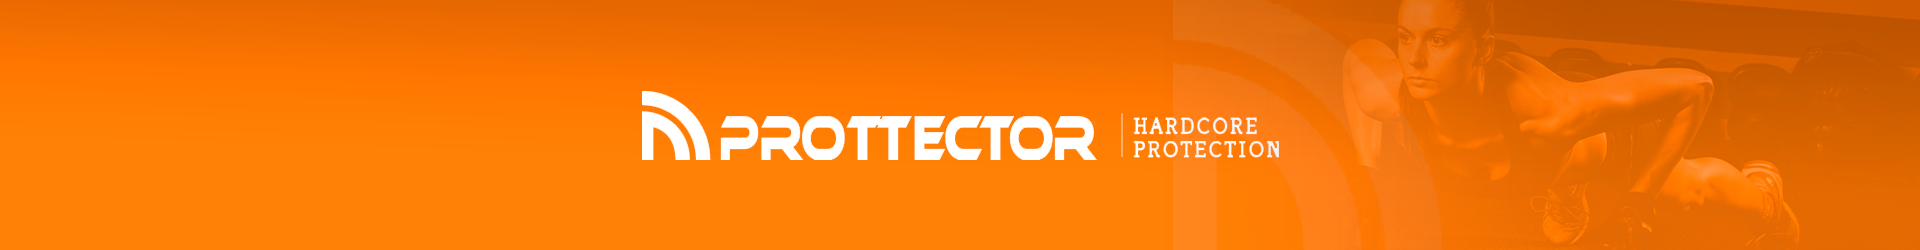 MARCA - Prottector